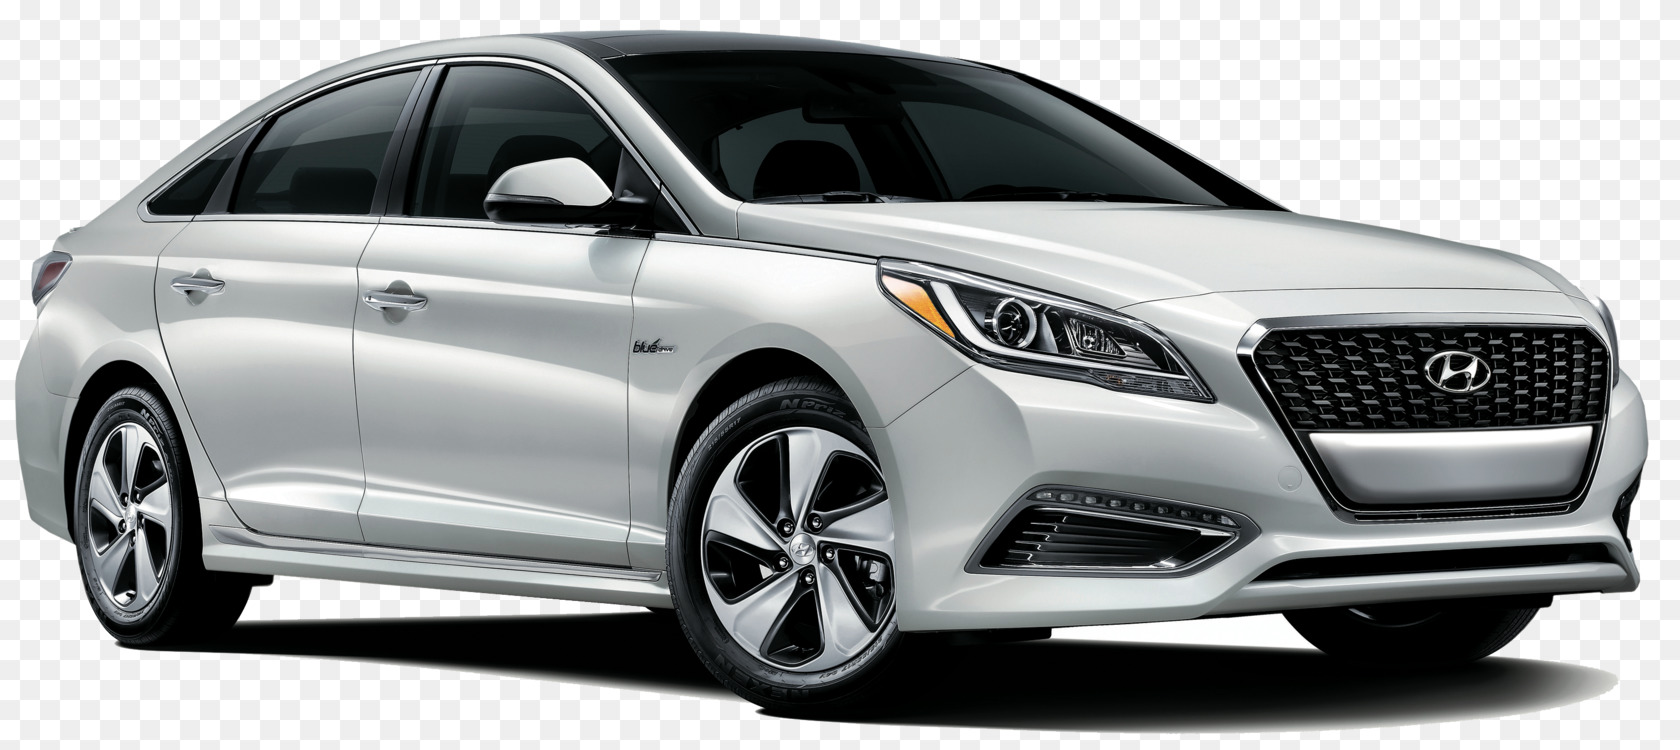 Family Car,Luxury Vehicle,Rim Transparent PNG.